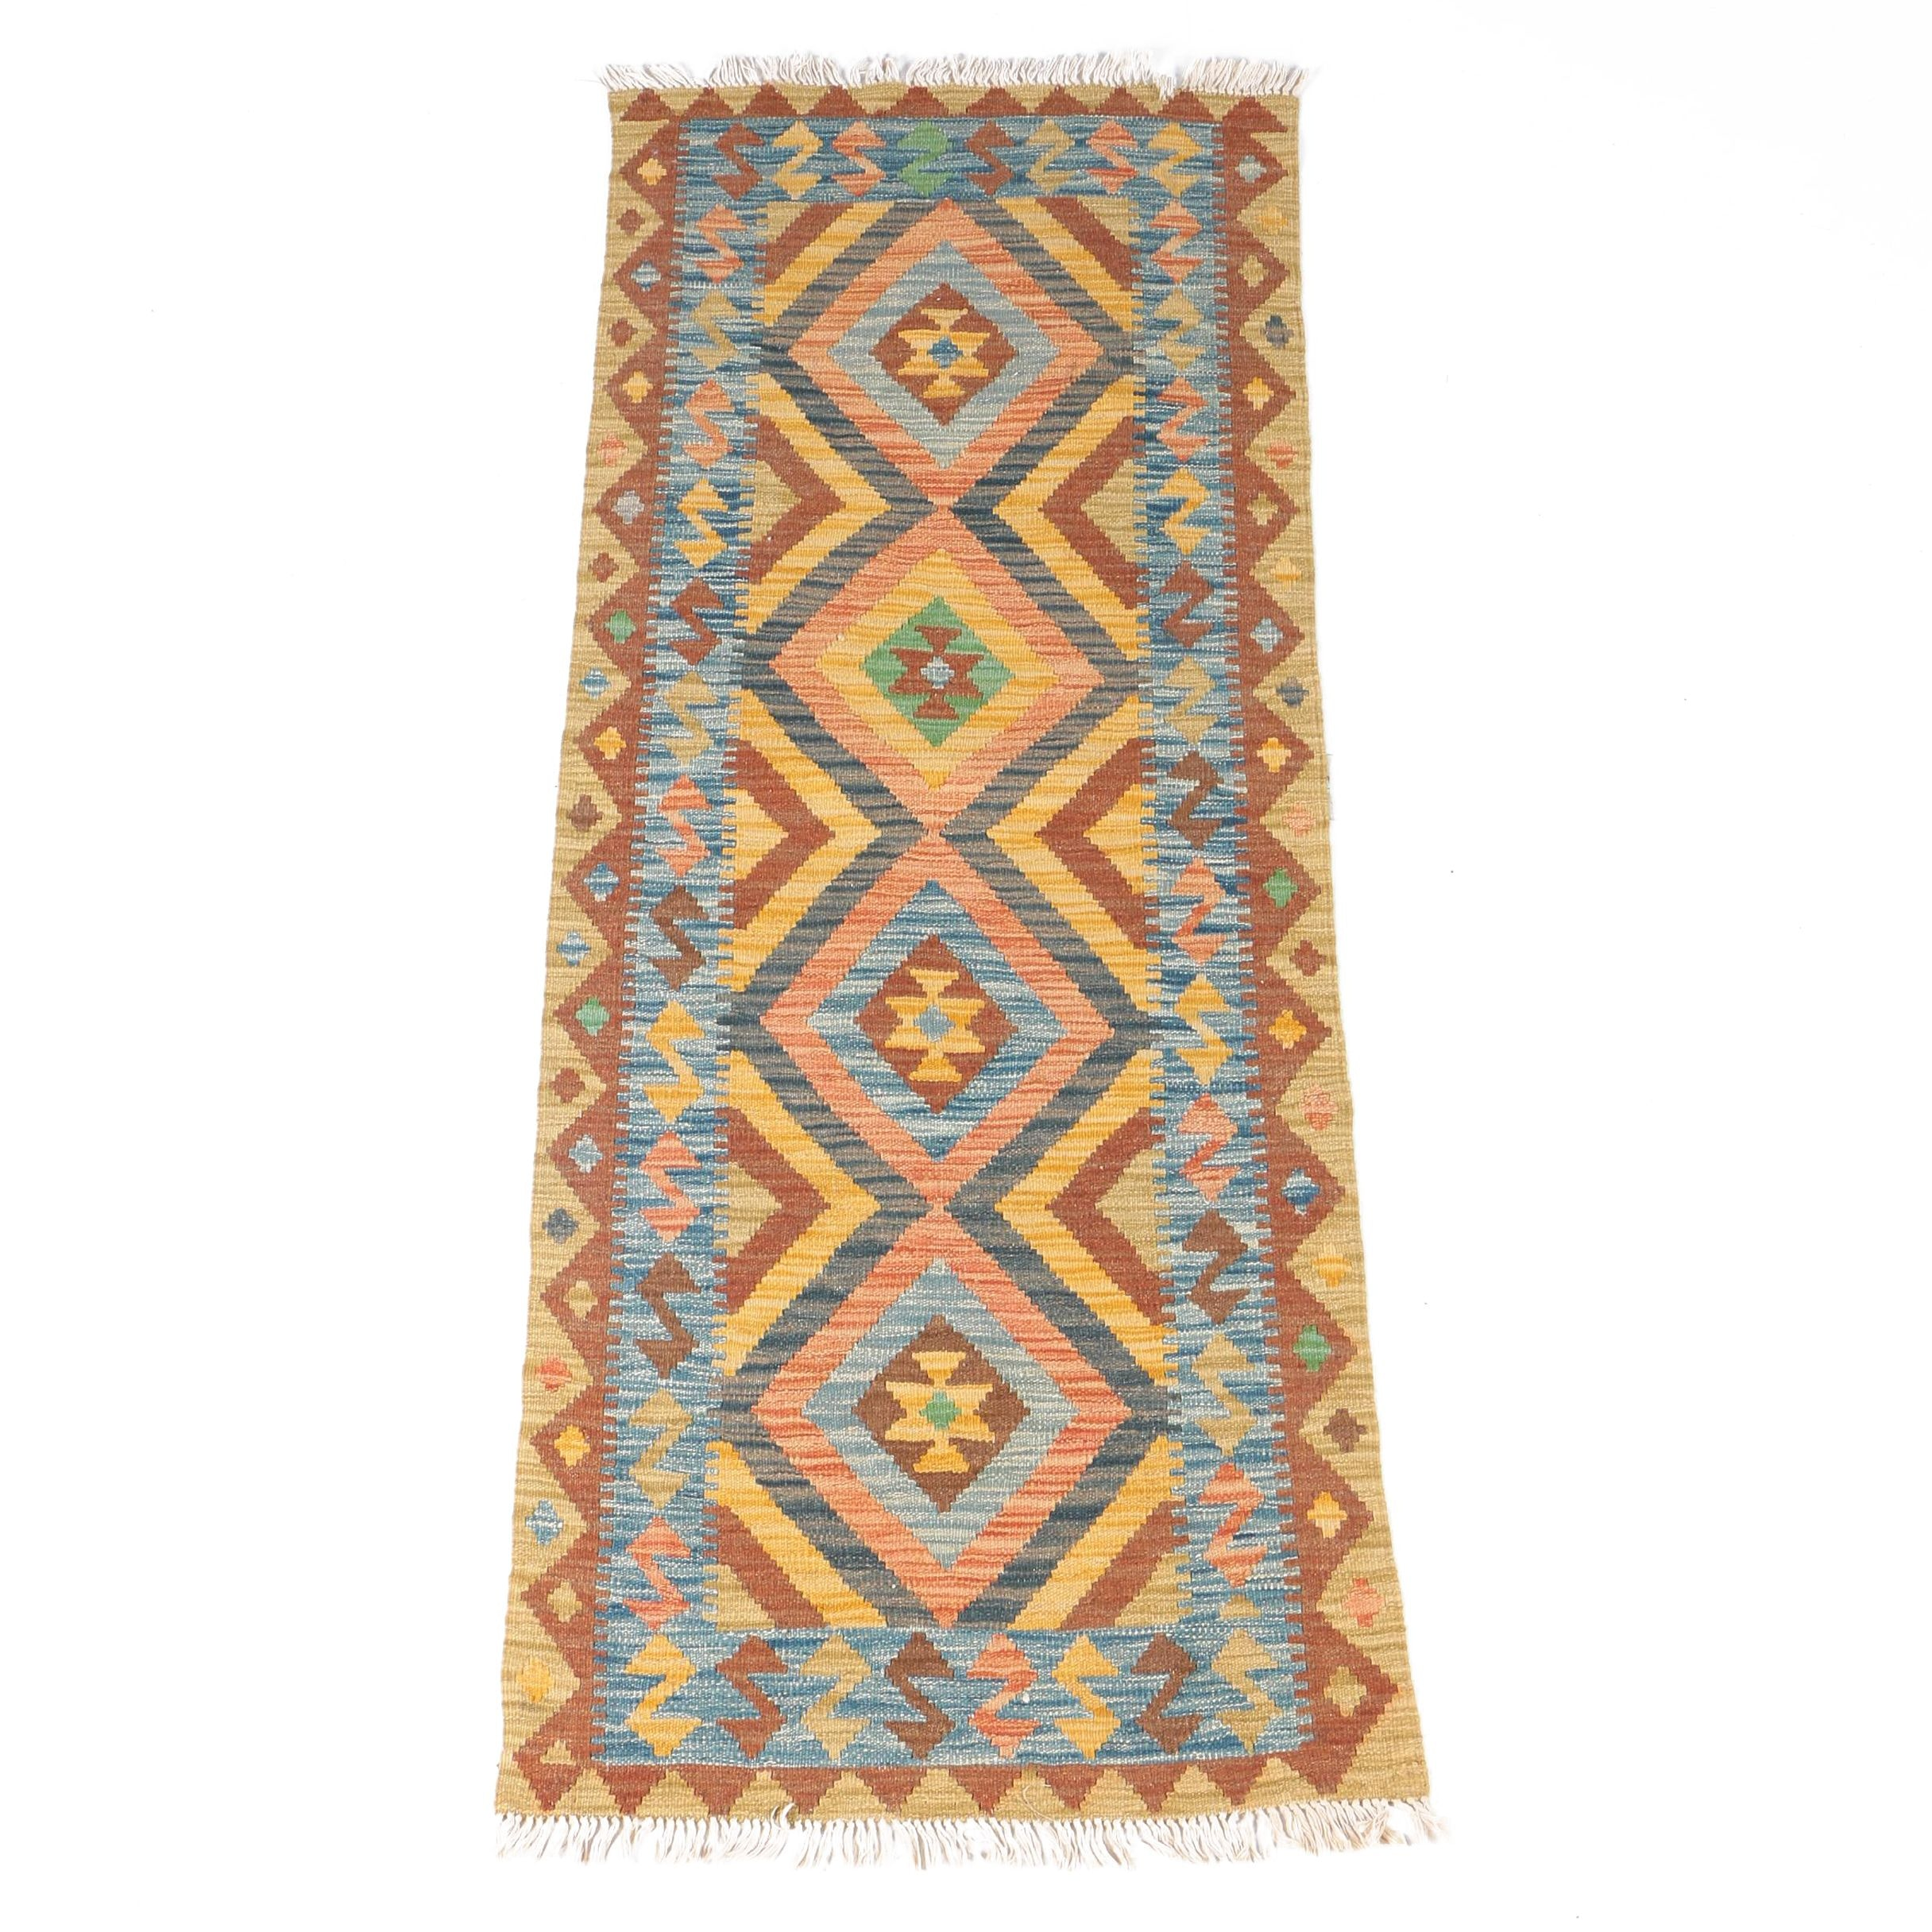 Handwoven Turkish Kilim Runner